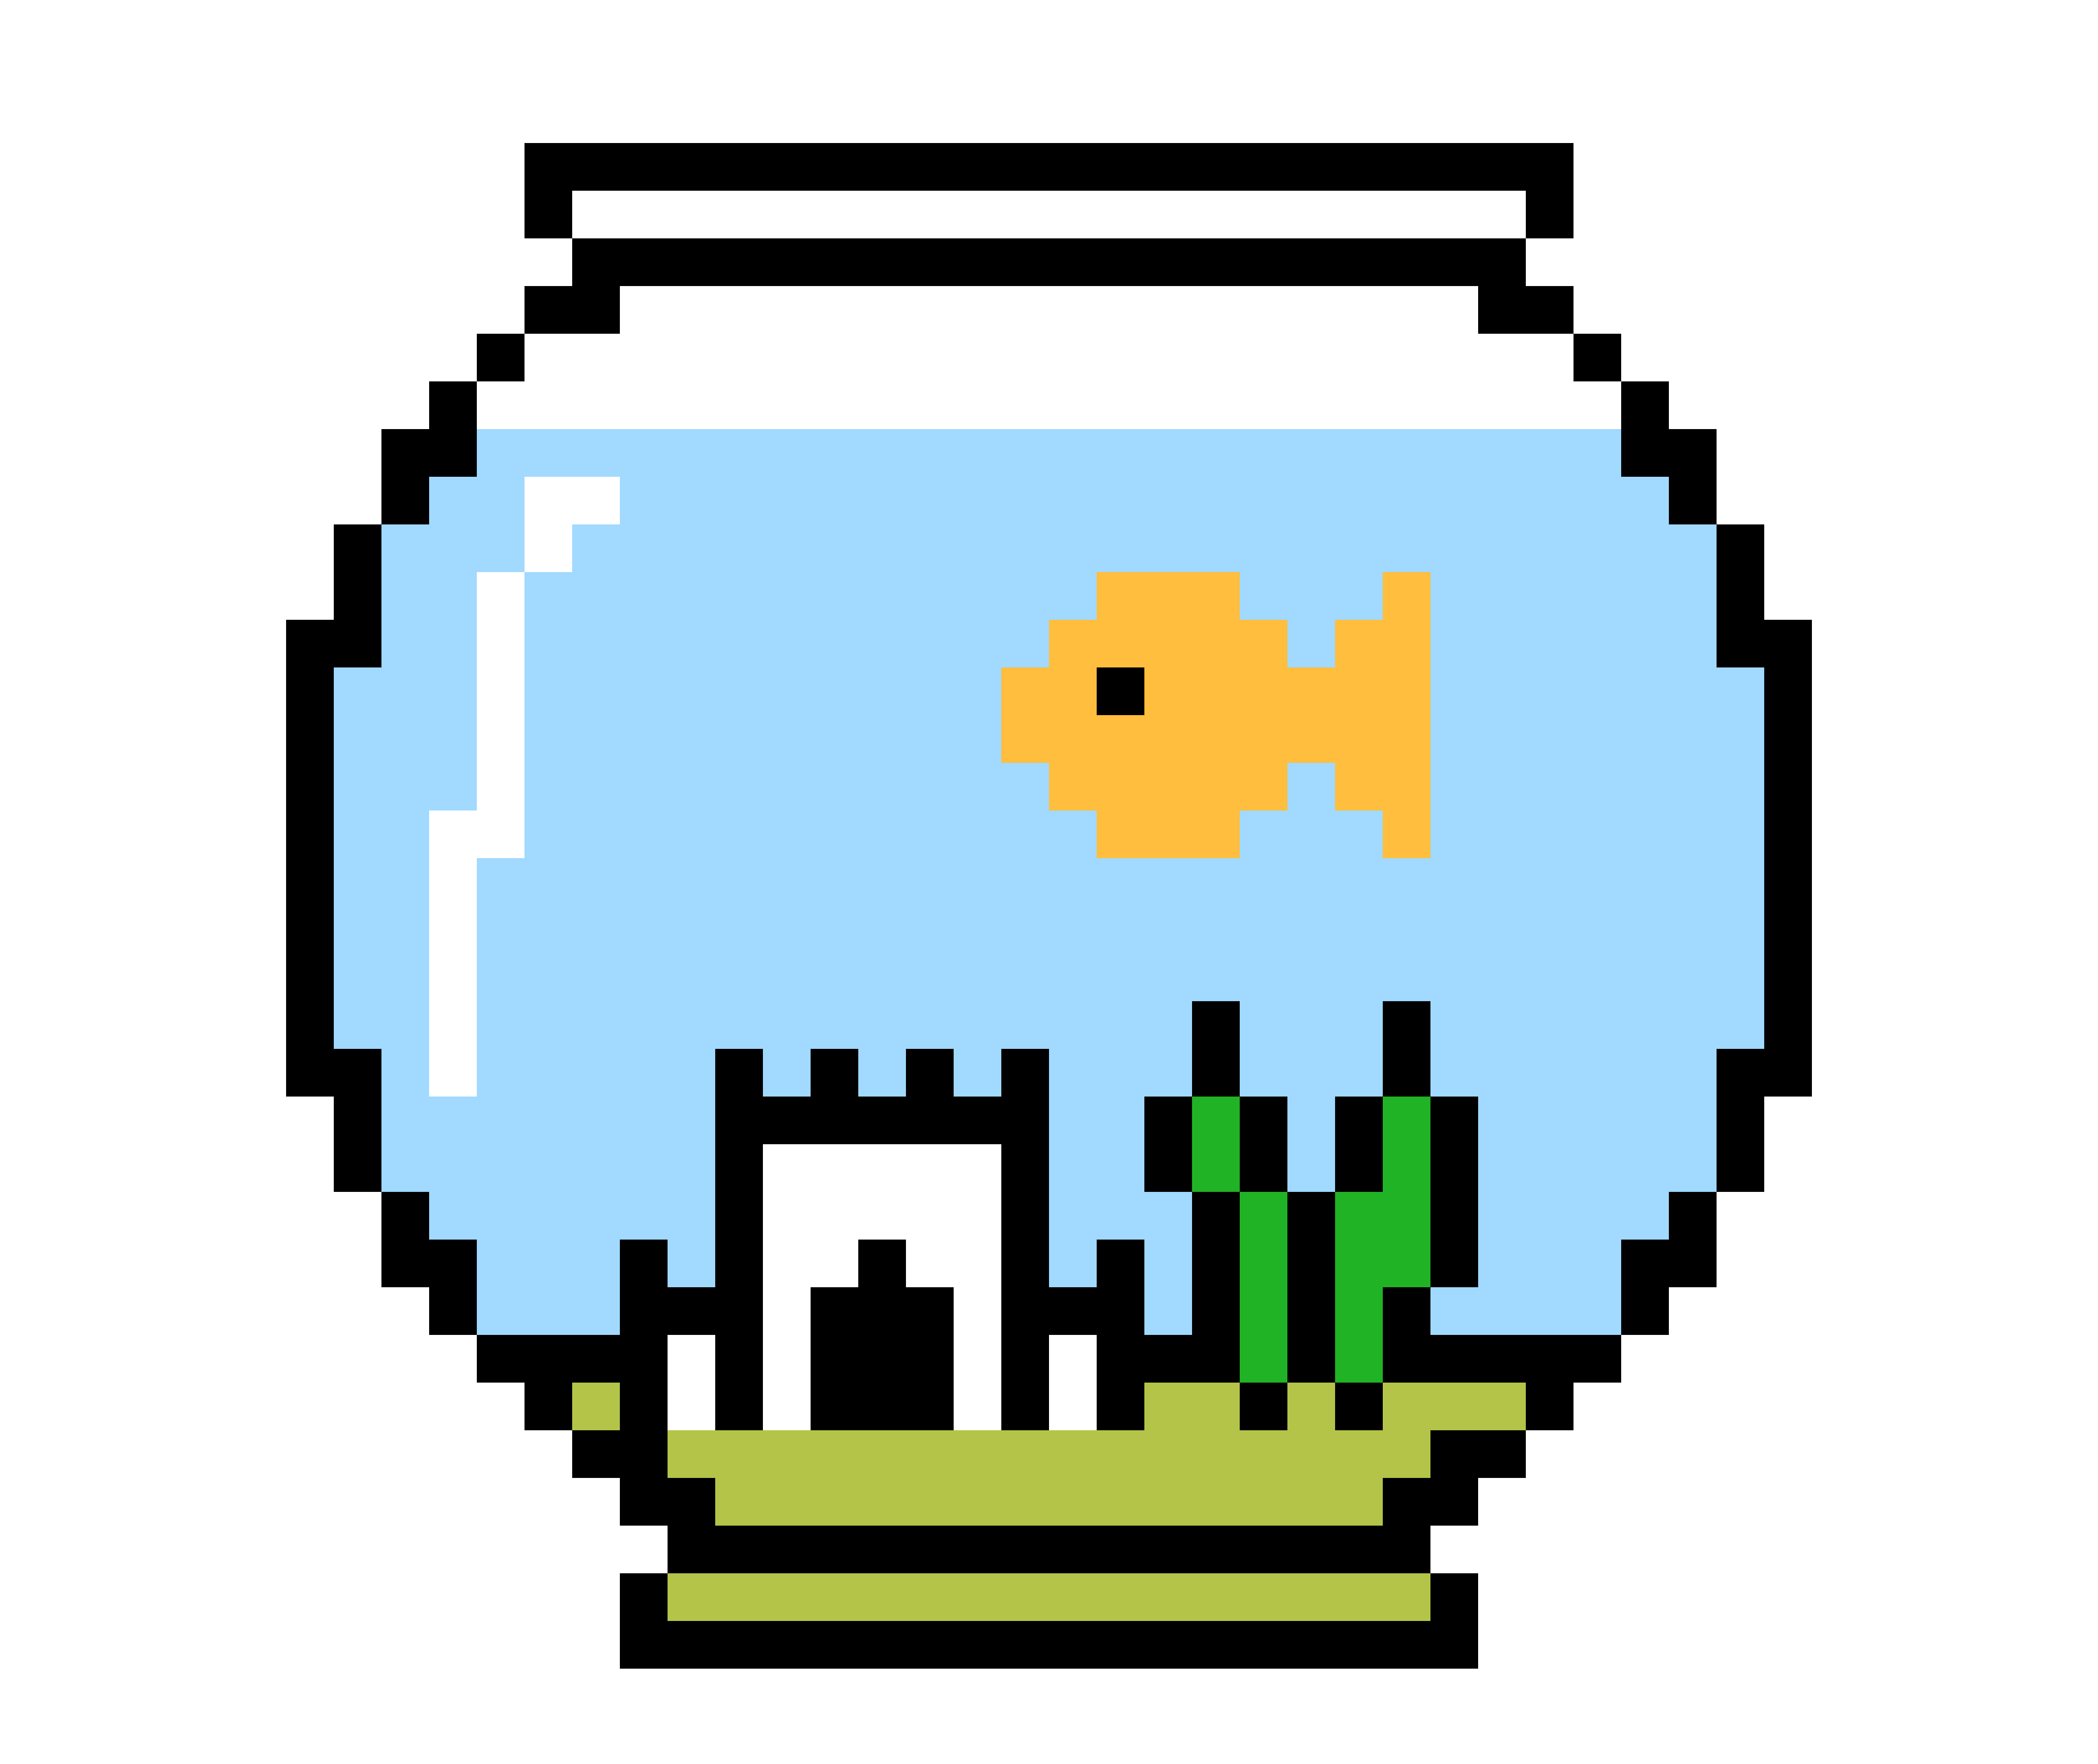 Fishbowl clipart empty fish tank. Bowl with larry inside